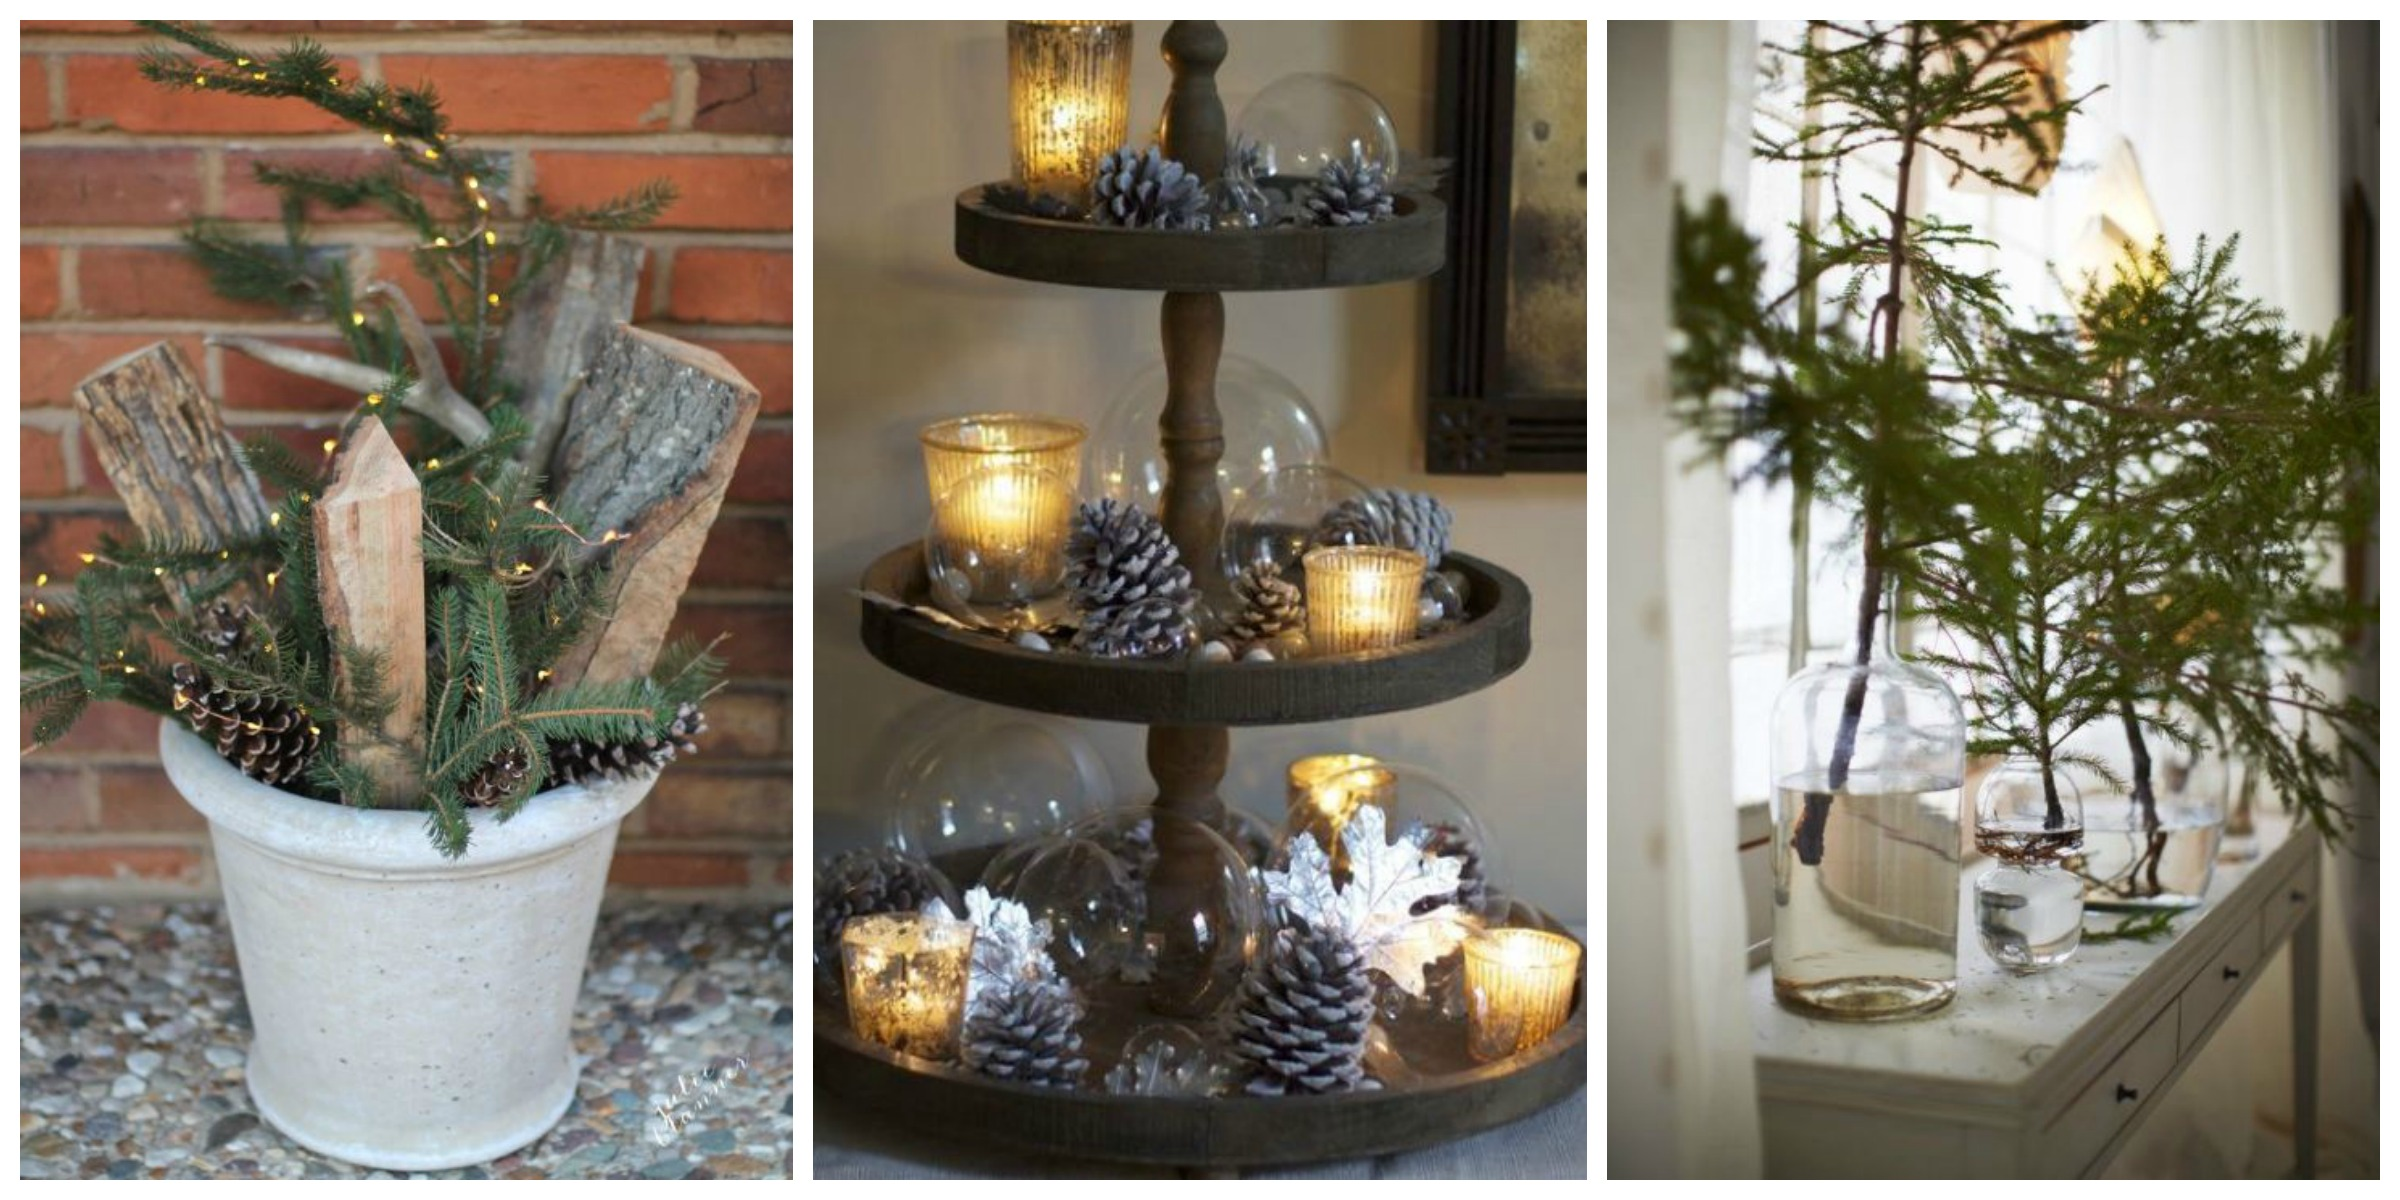 Decorating Ideas: How To Decorate Your Home For Winter